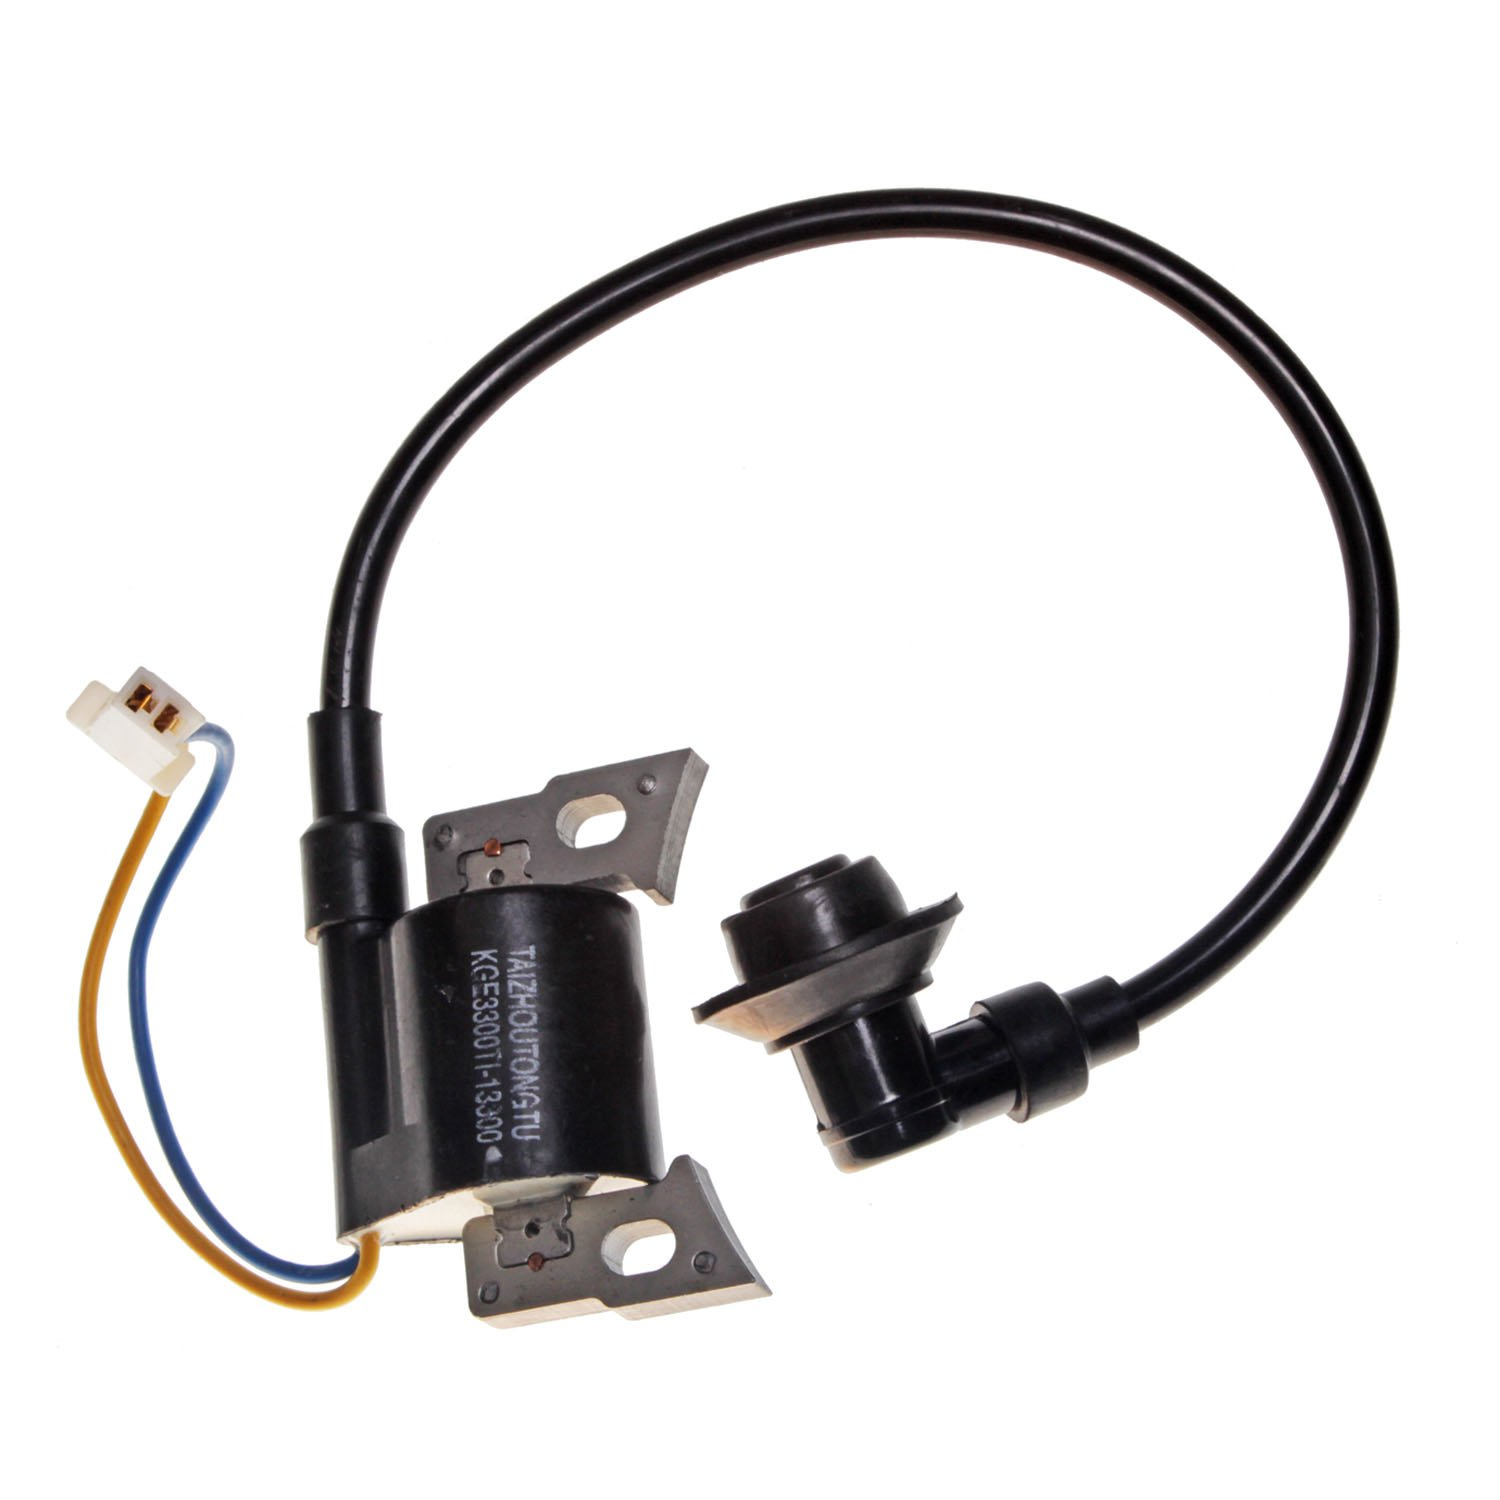 Mover Parts Ignition Coil KG3300ti-13300 For Kipor GS3000 GS6000 IG3500 IG6000 Generators